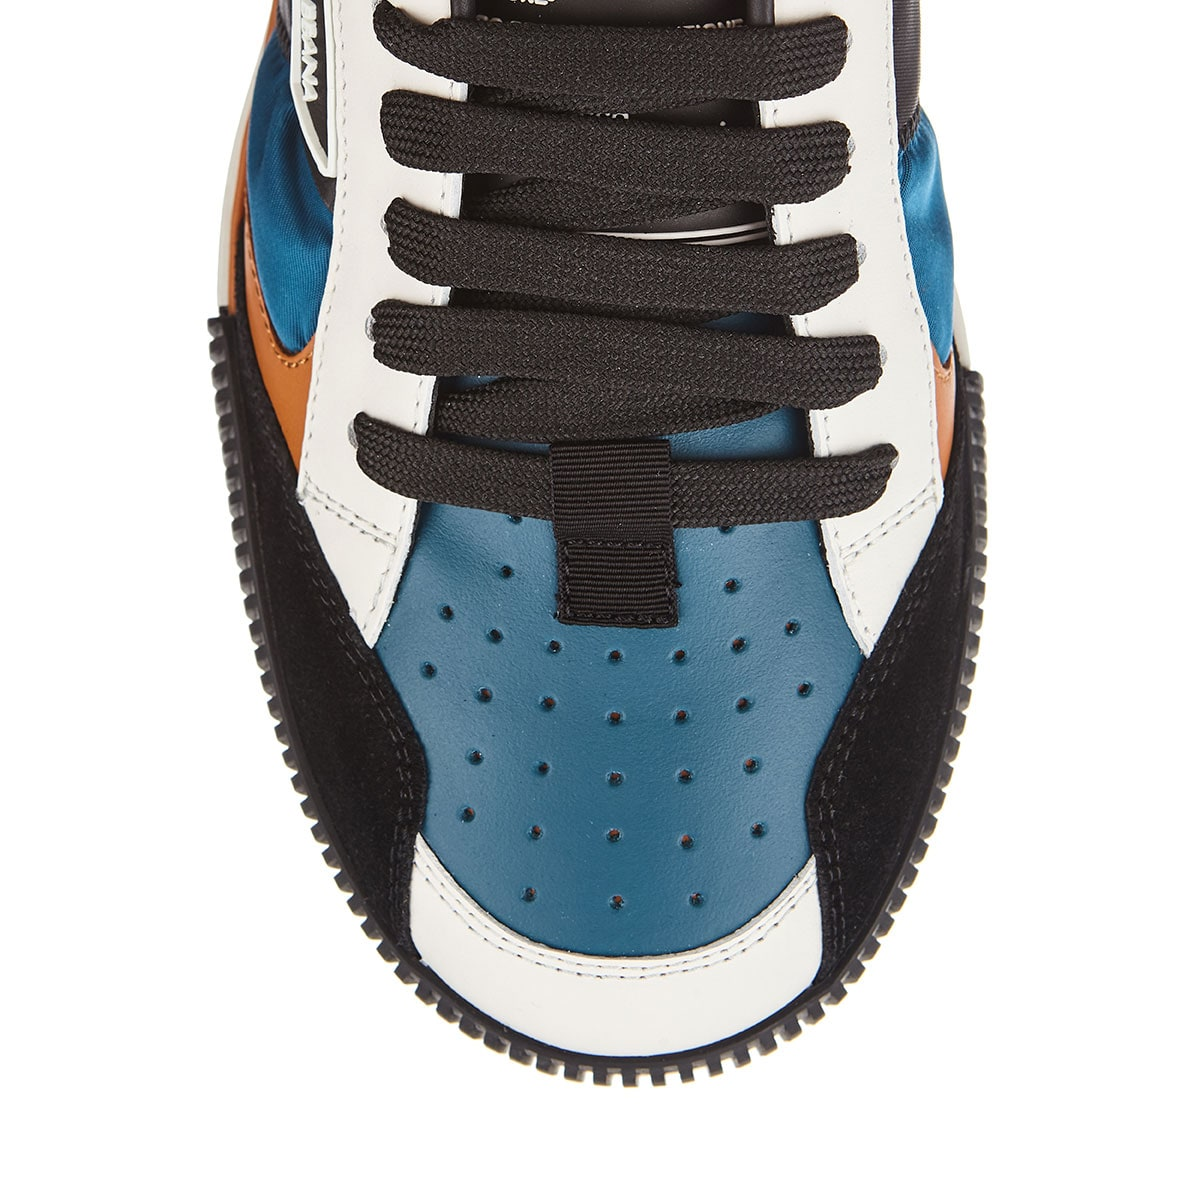 Miami low-top sneakers